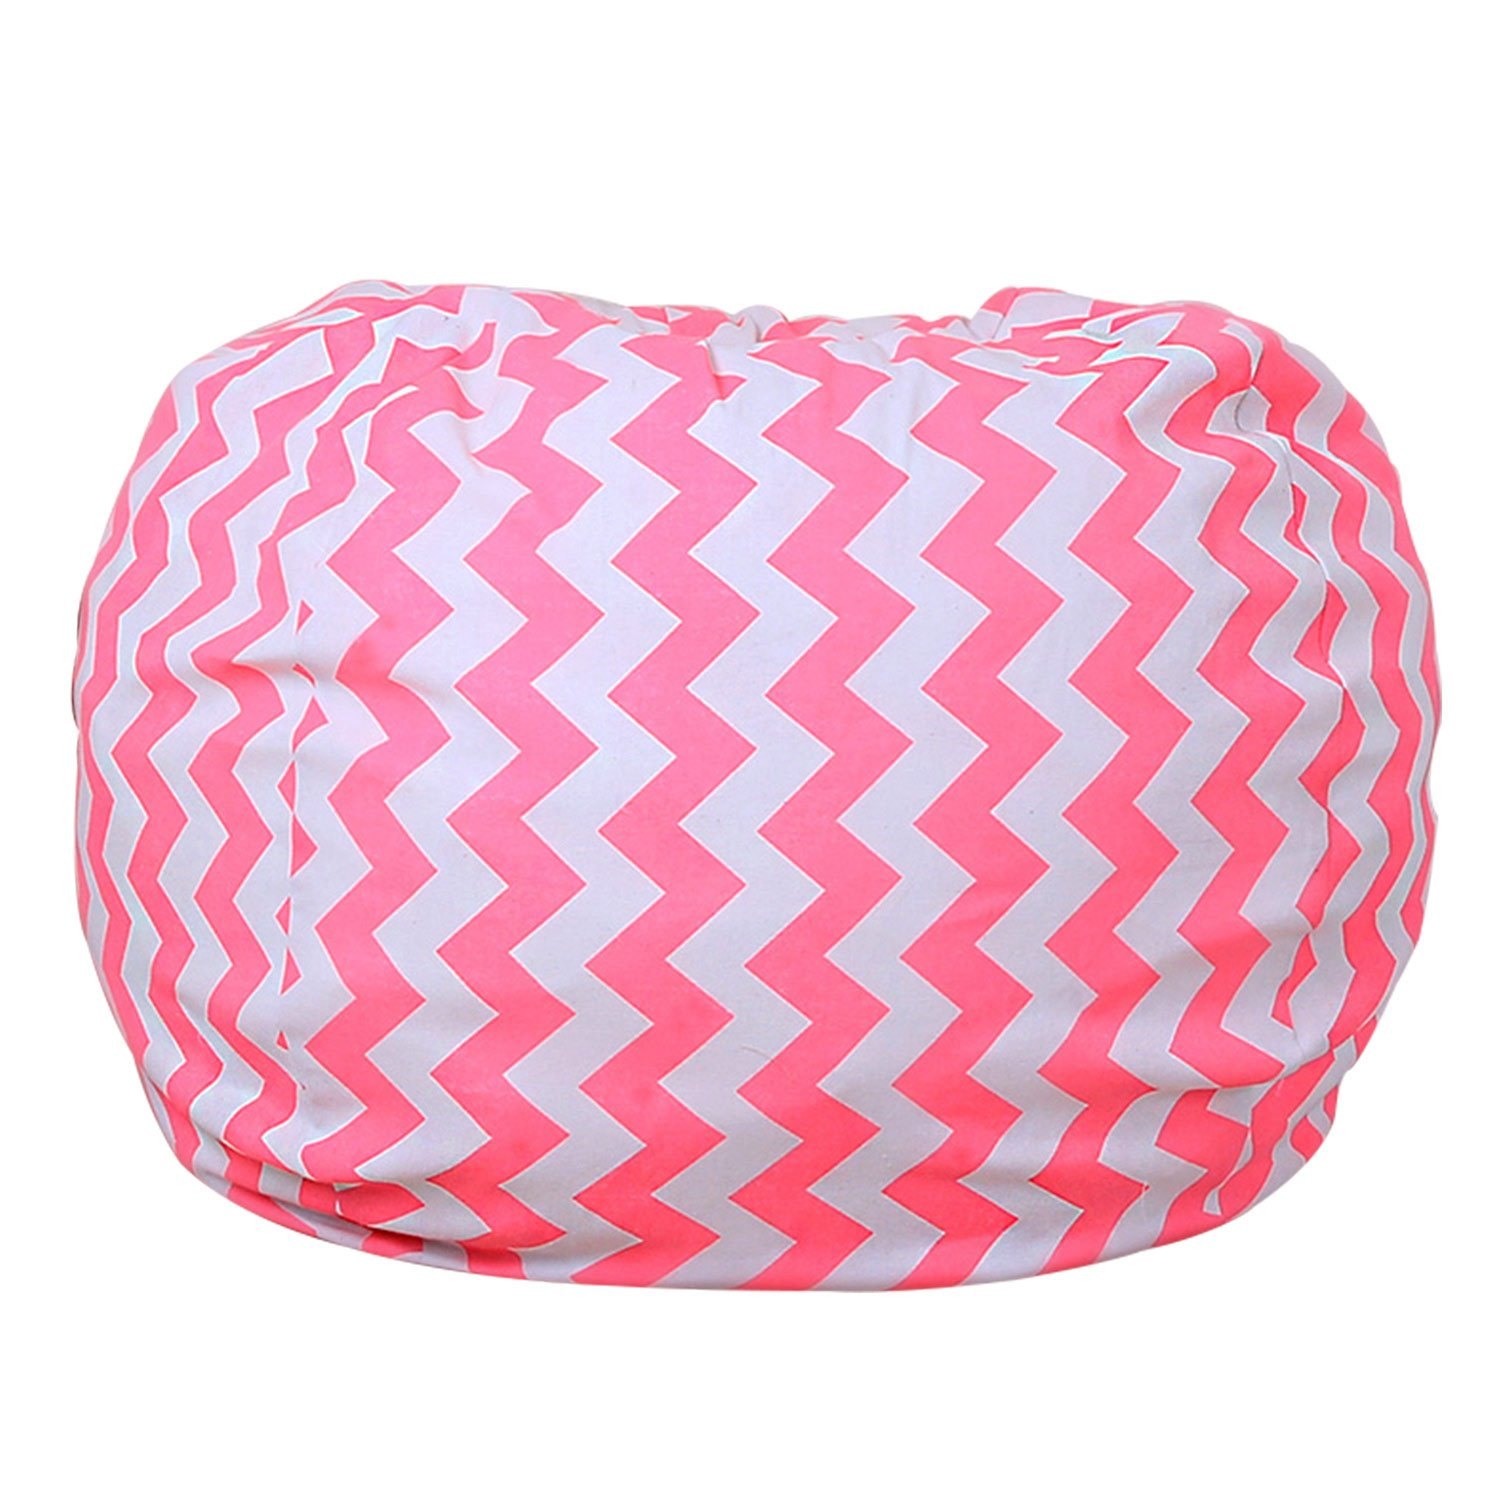 Premium Quality 32 Inch Storage Bean Bag - Stuffed Animal Storage Bean Bag Chair   Perfect Storage Solution For Blankets/Pillows/Towels/Clothes (13)